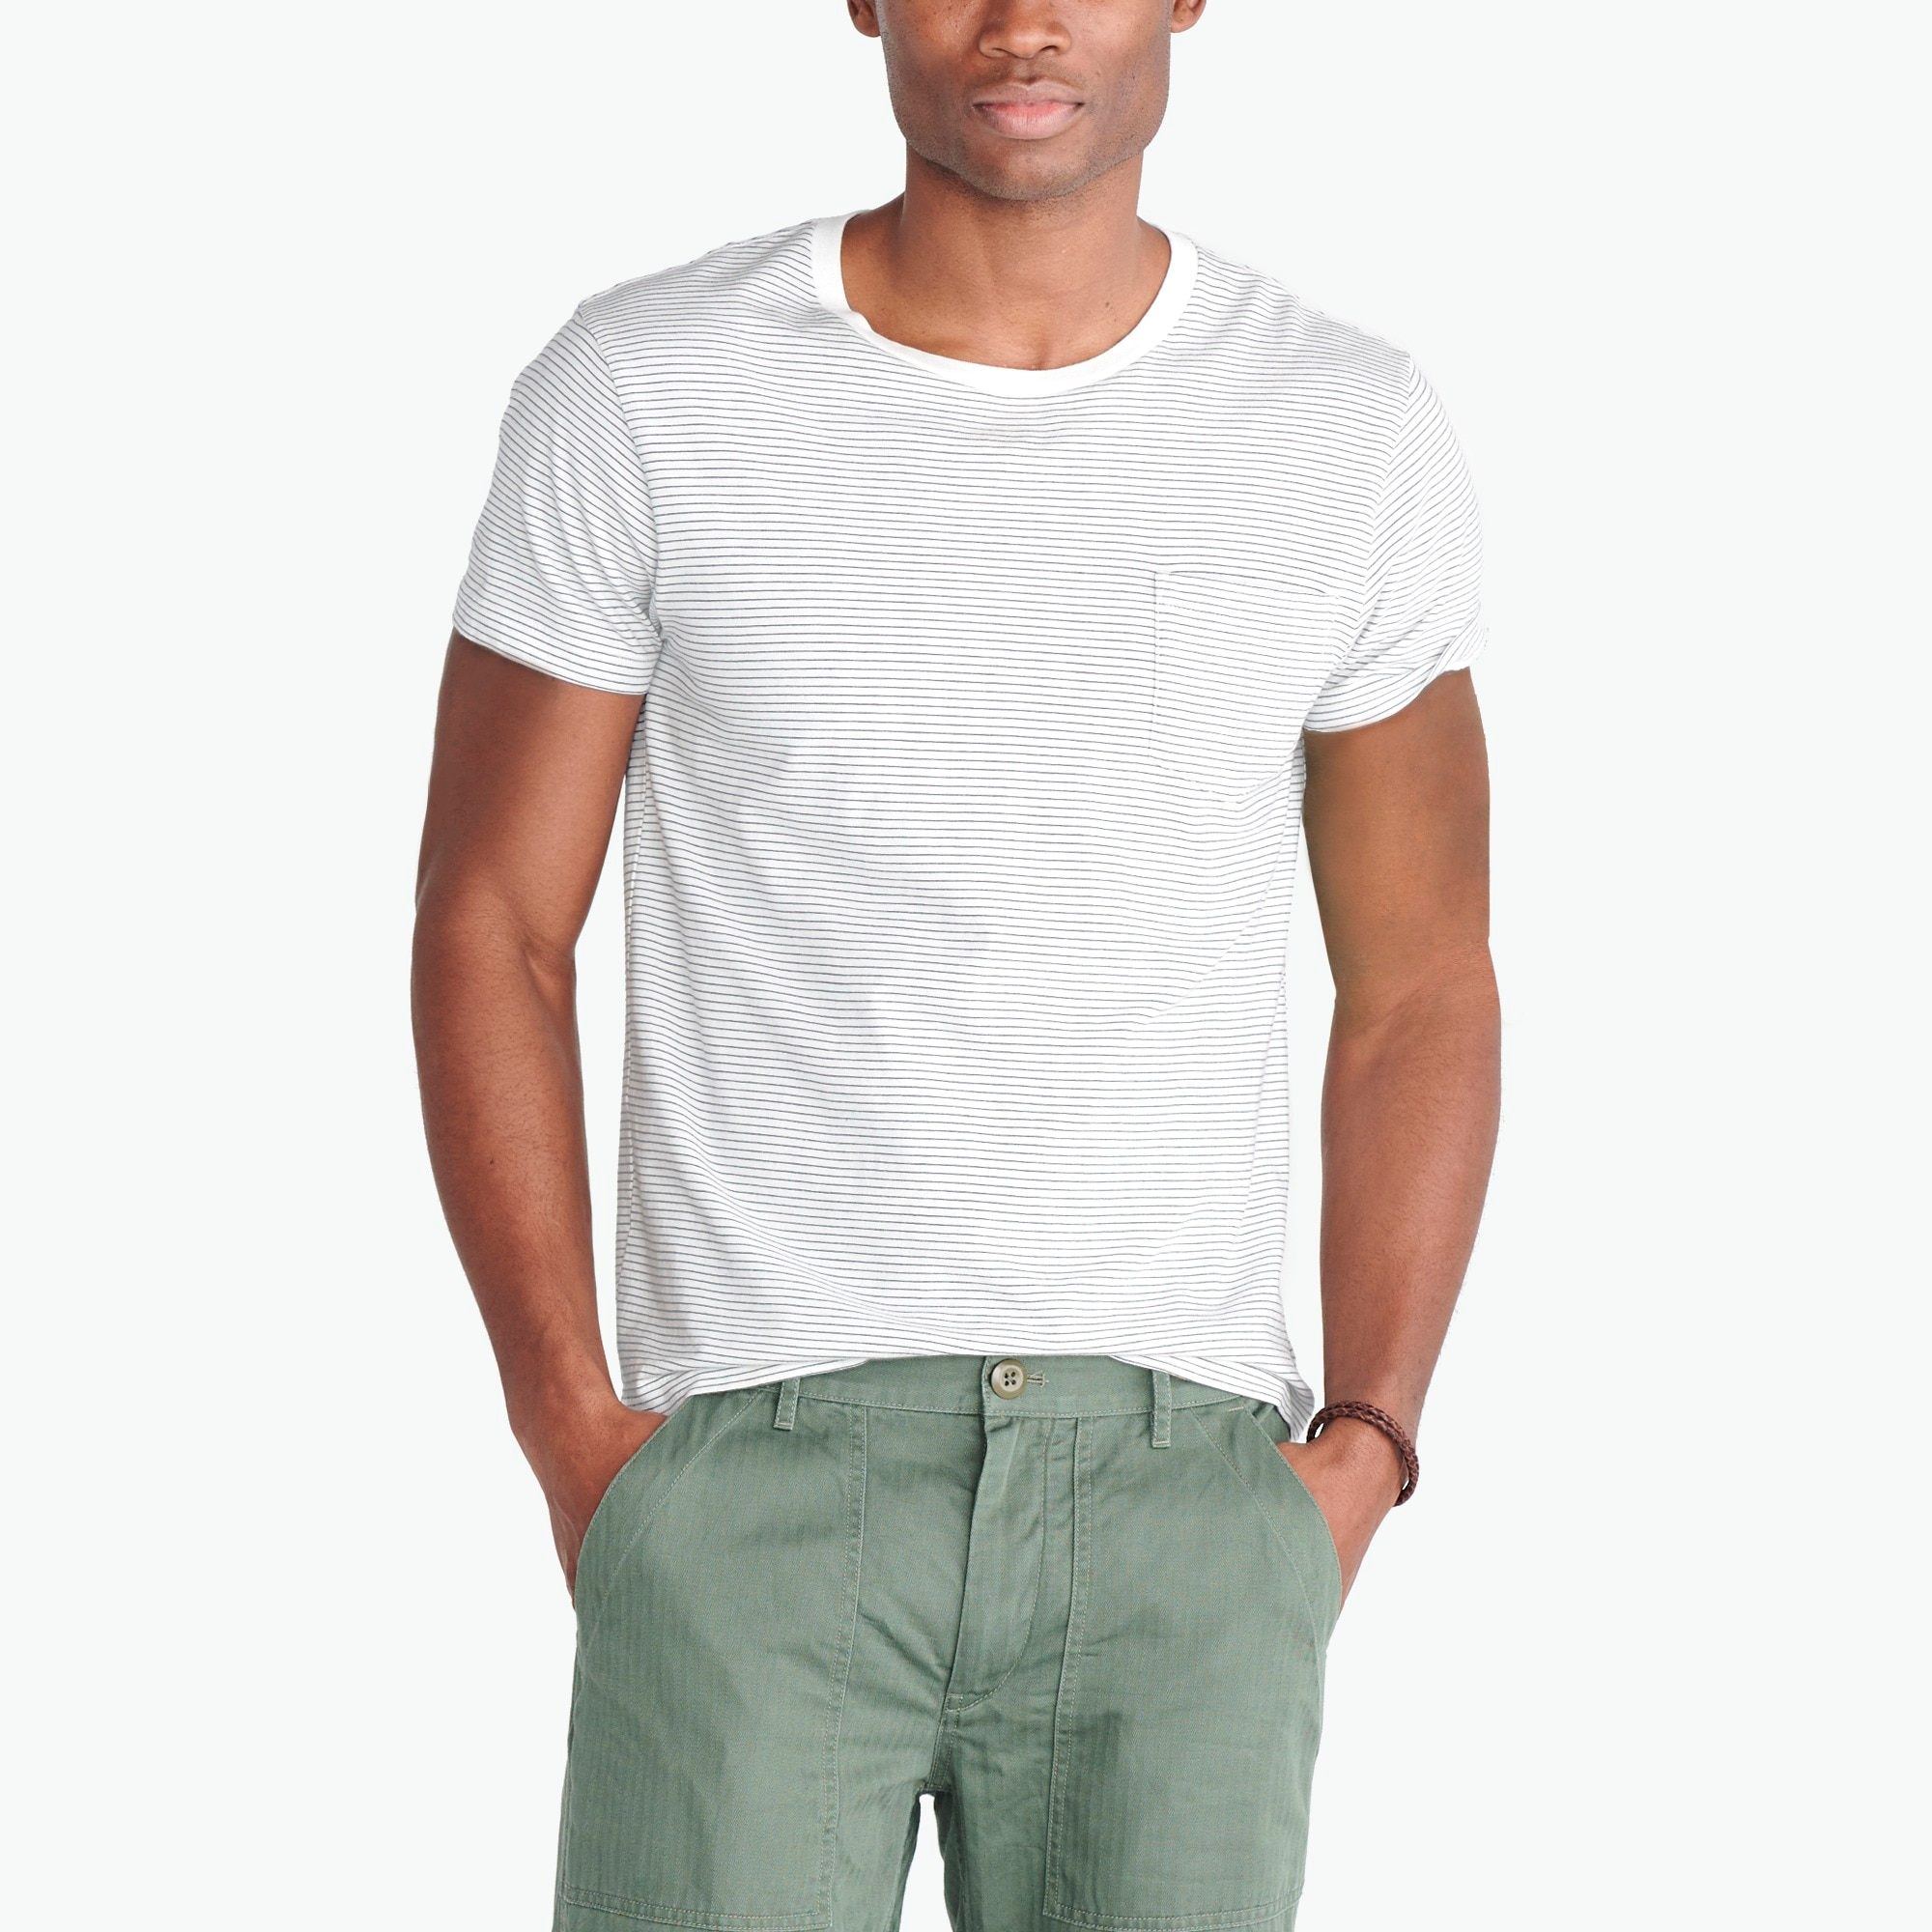 J.Crew Mercantile Broken-in bartlett striped T-shirt factorymen t-shirts & henleys c